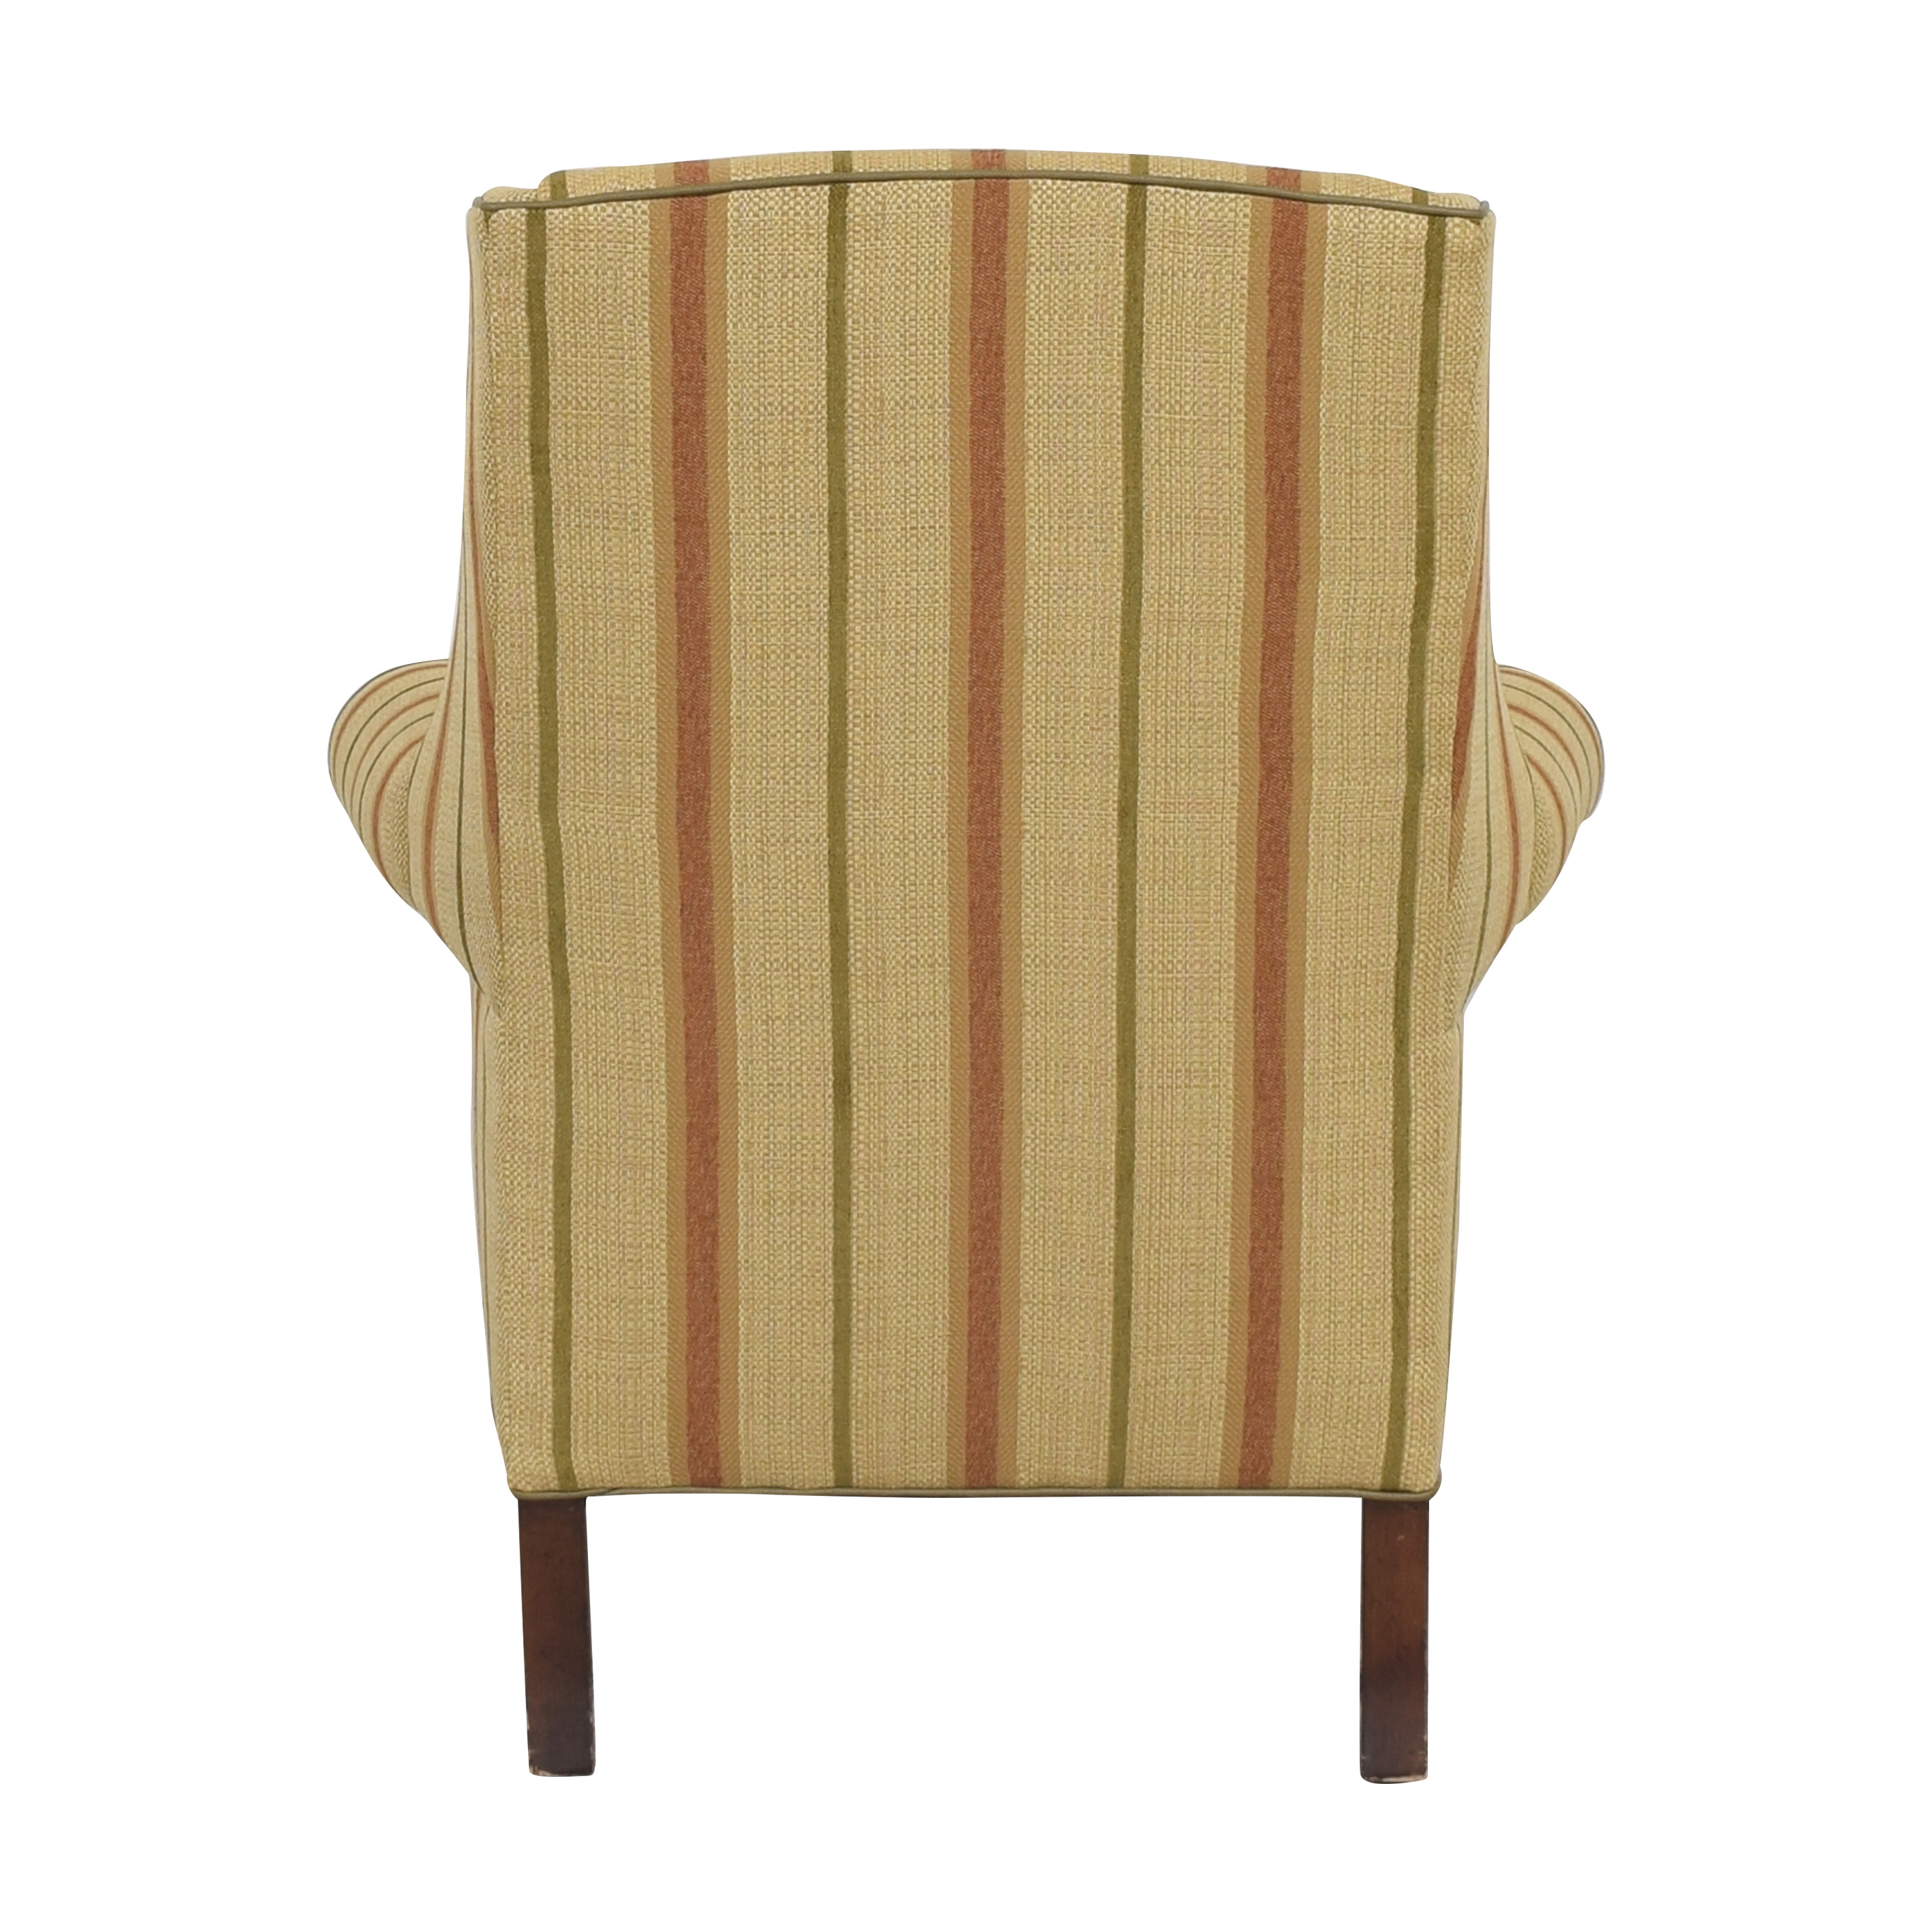 Thomasville Thomasville Striped Wingback Chair used